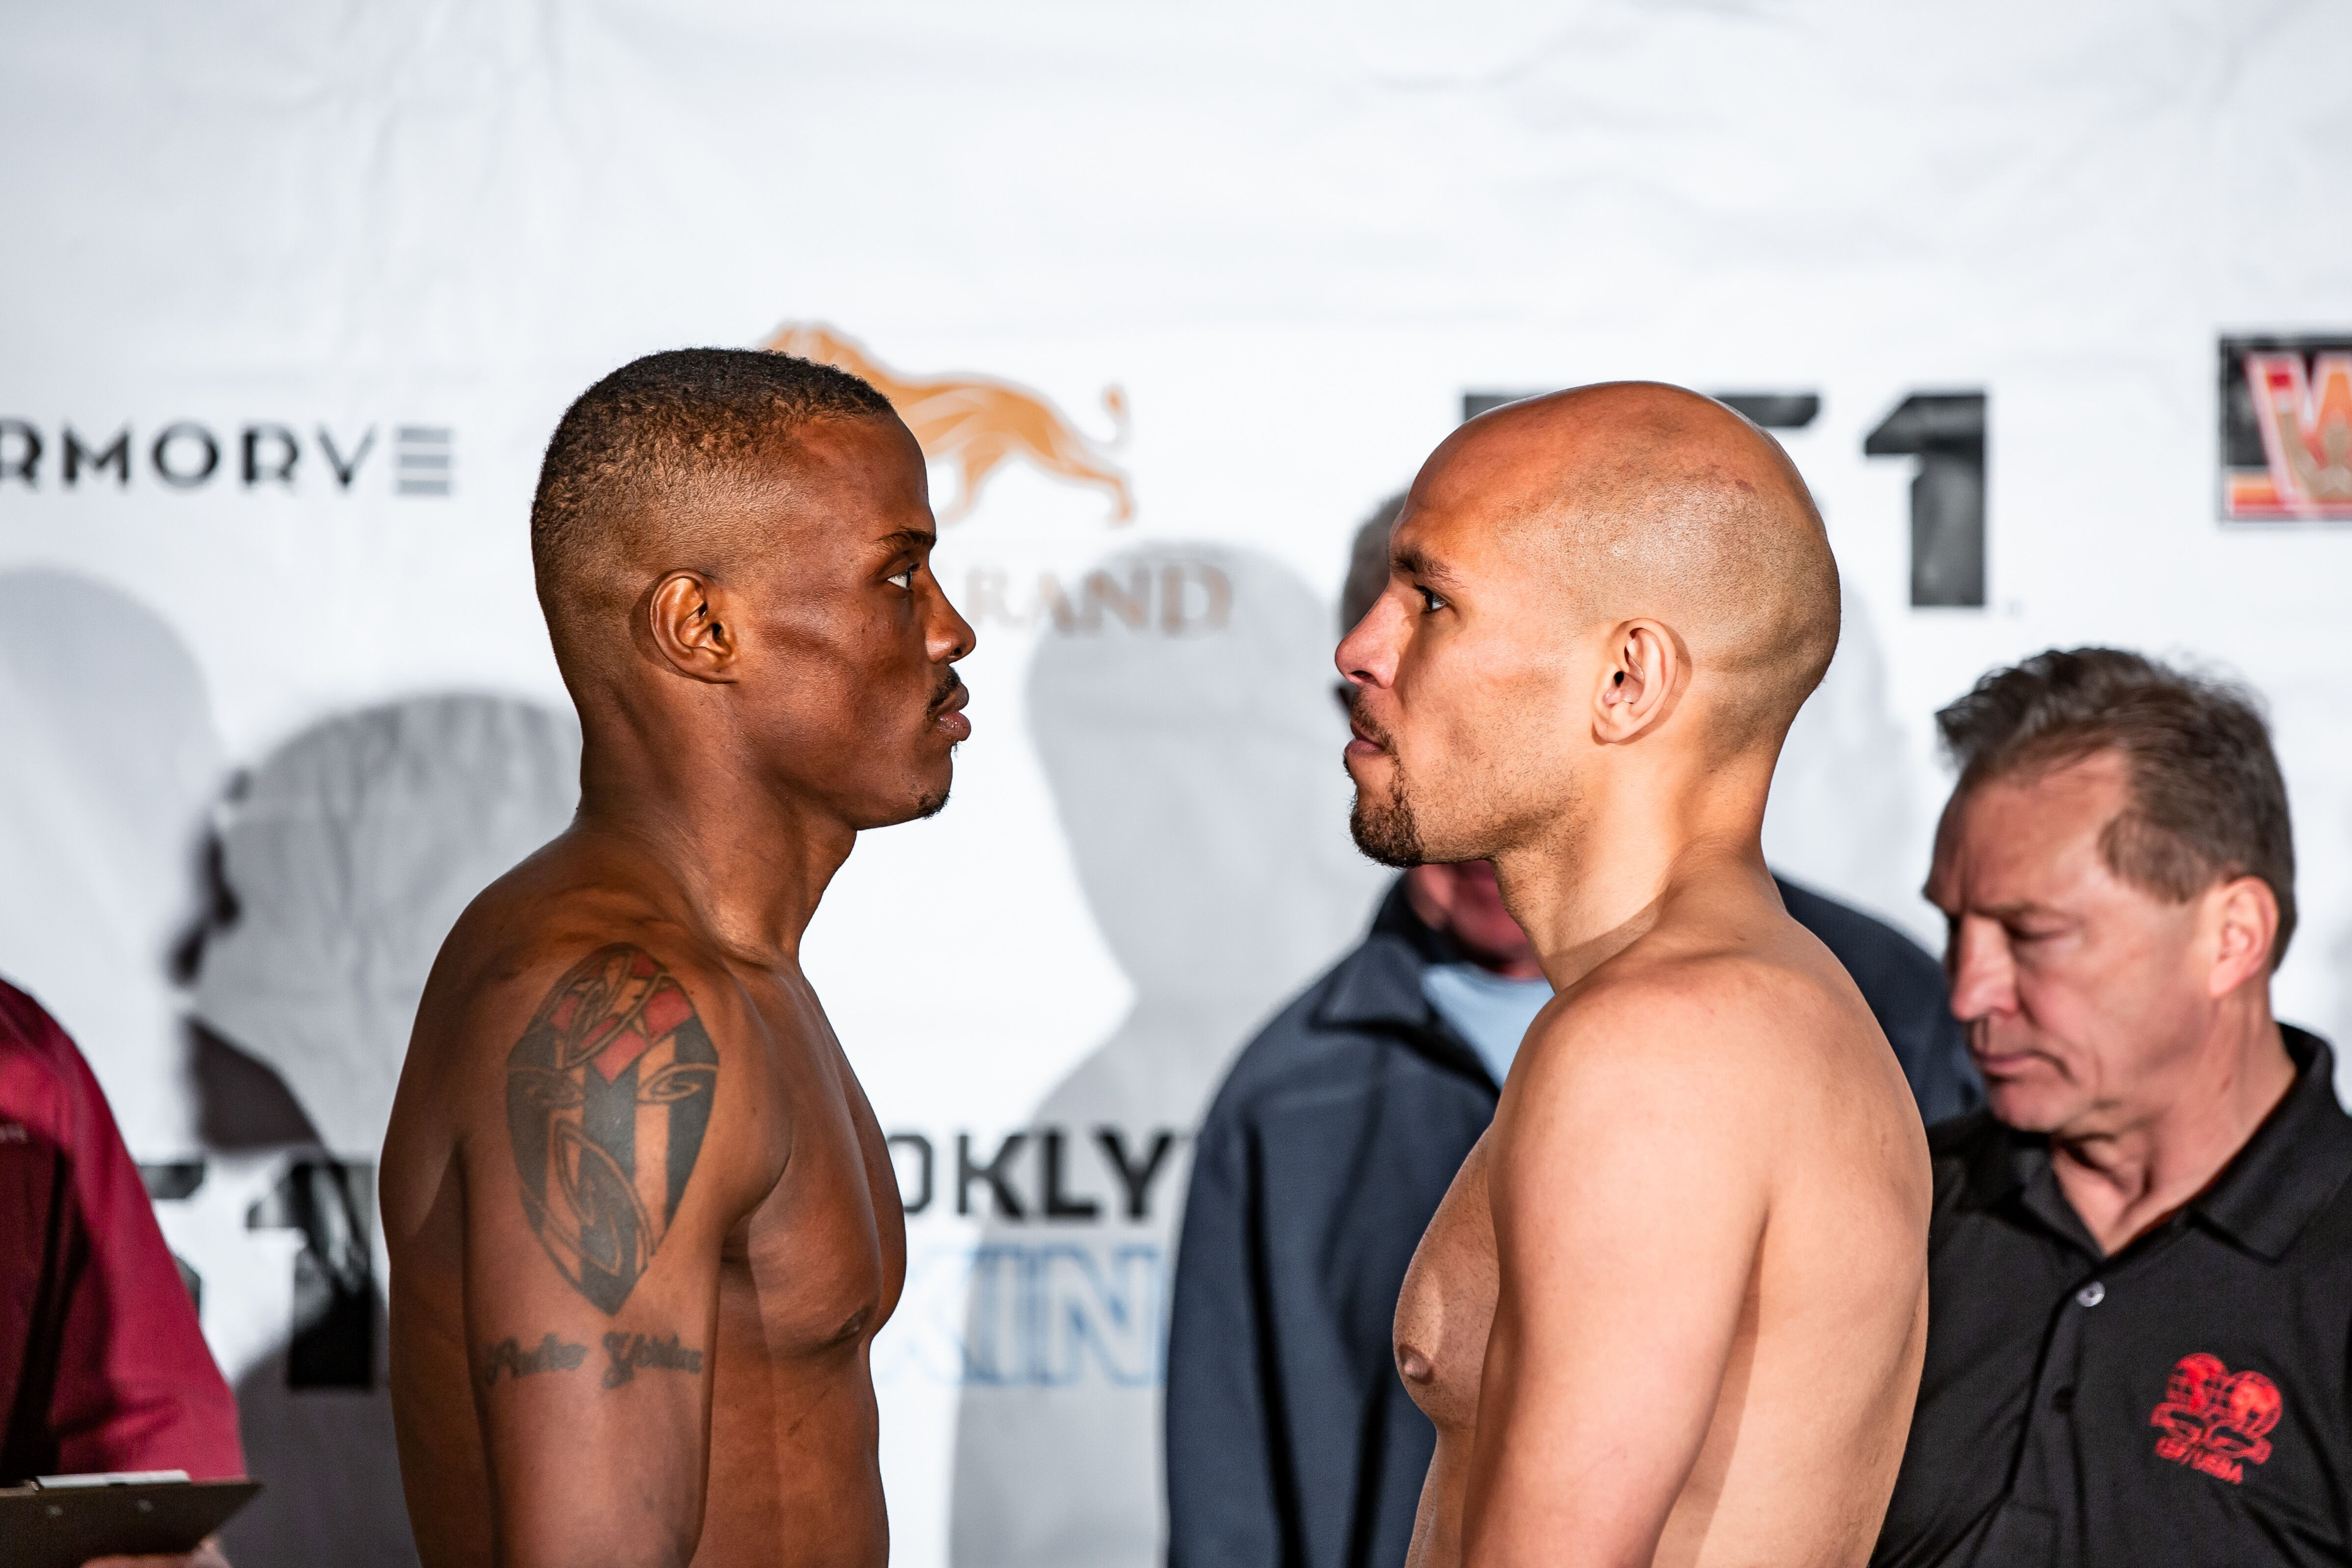 226CCFD7 D190 4DAE A260 D57F4C3AA08C - PBC Boxing Preview: Caleb Truax and Peter Quillin Fight to Stay Alive at 168 lbs